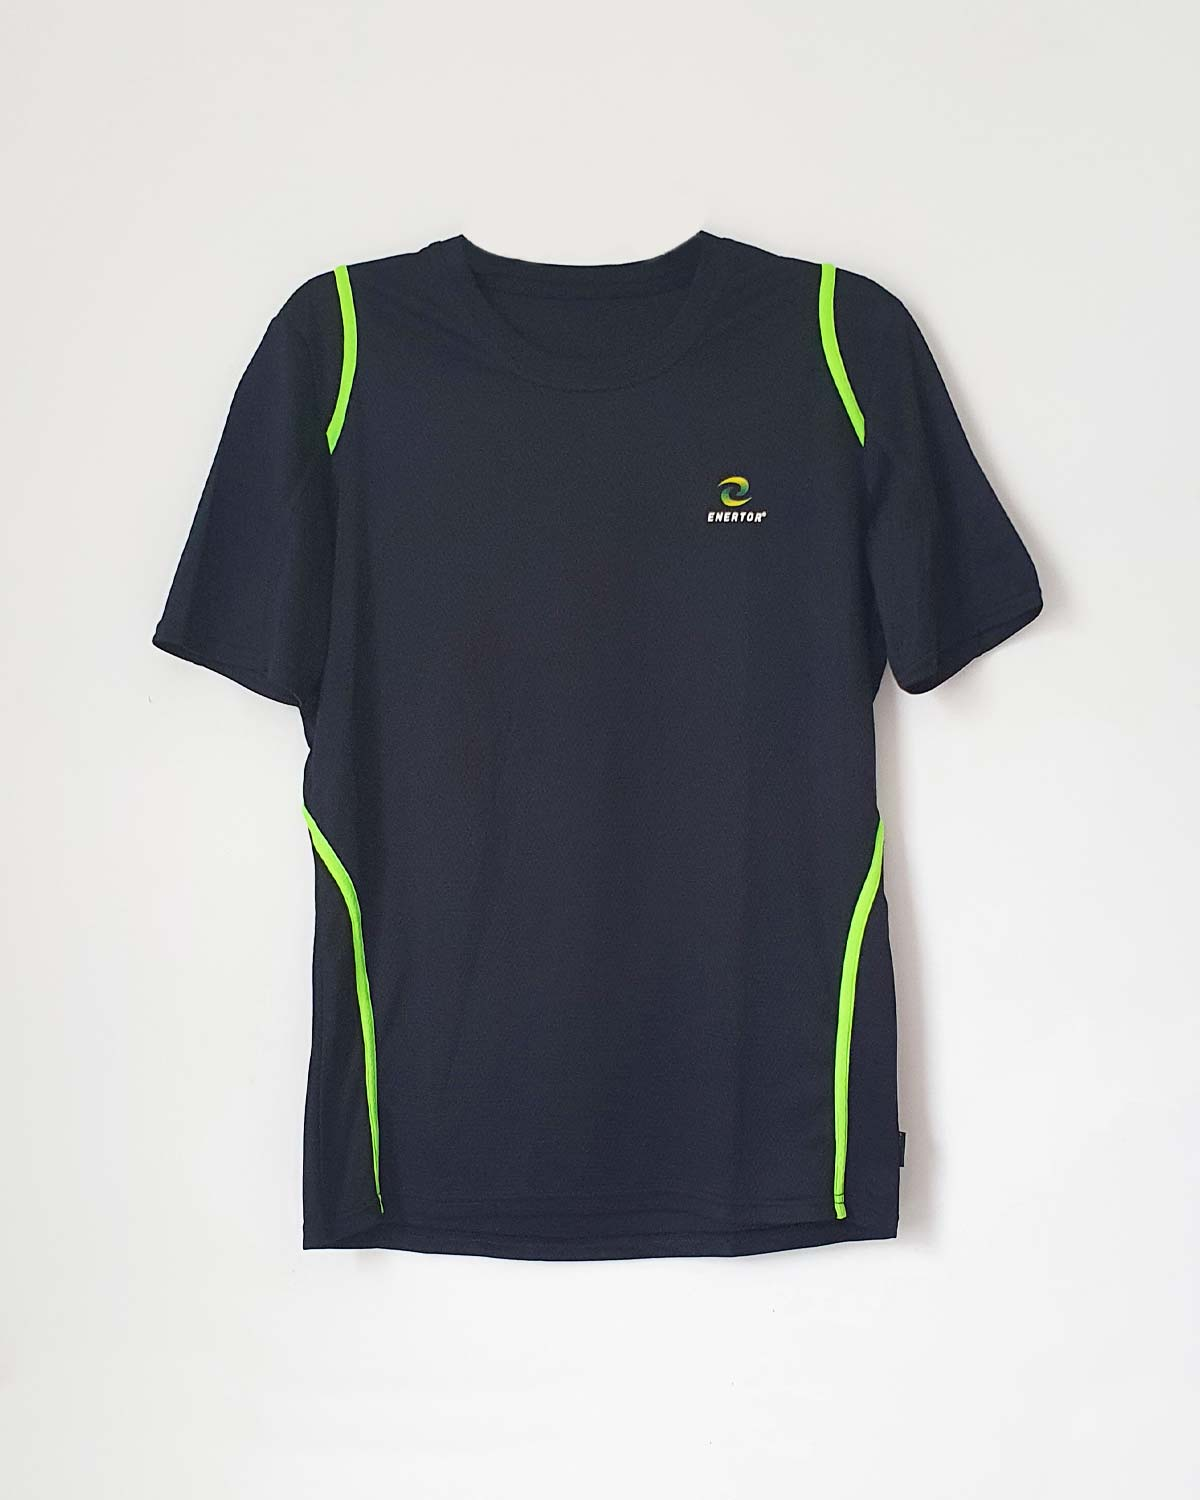 Enertor Breathable T-shirt Black Logo Top With Green Luminous Stripes